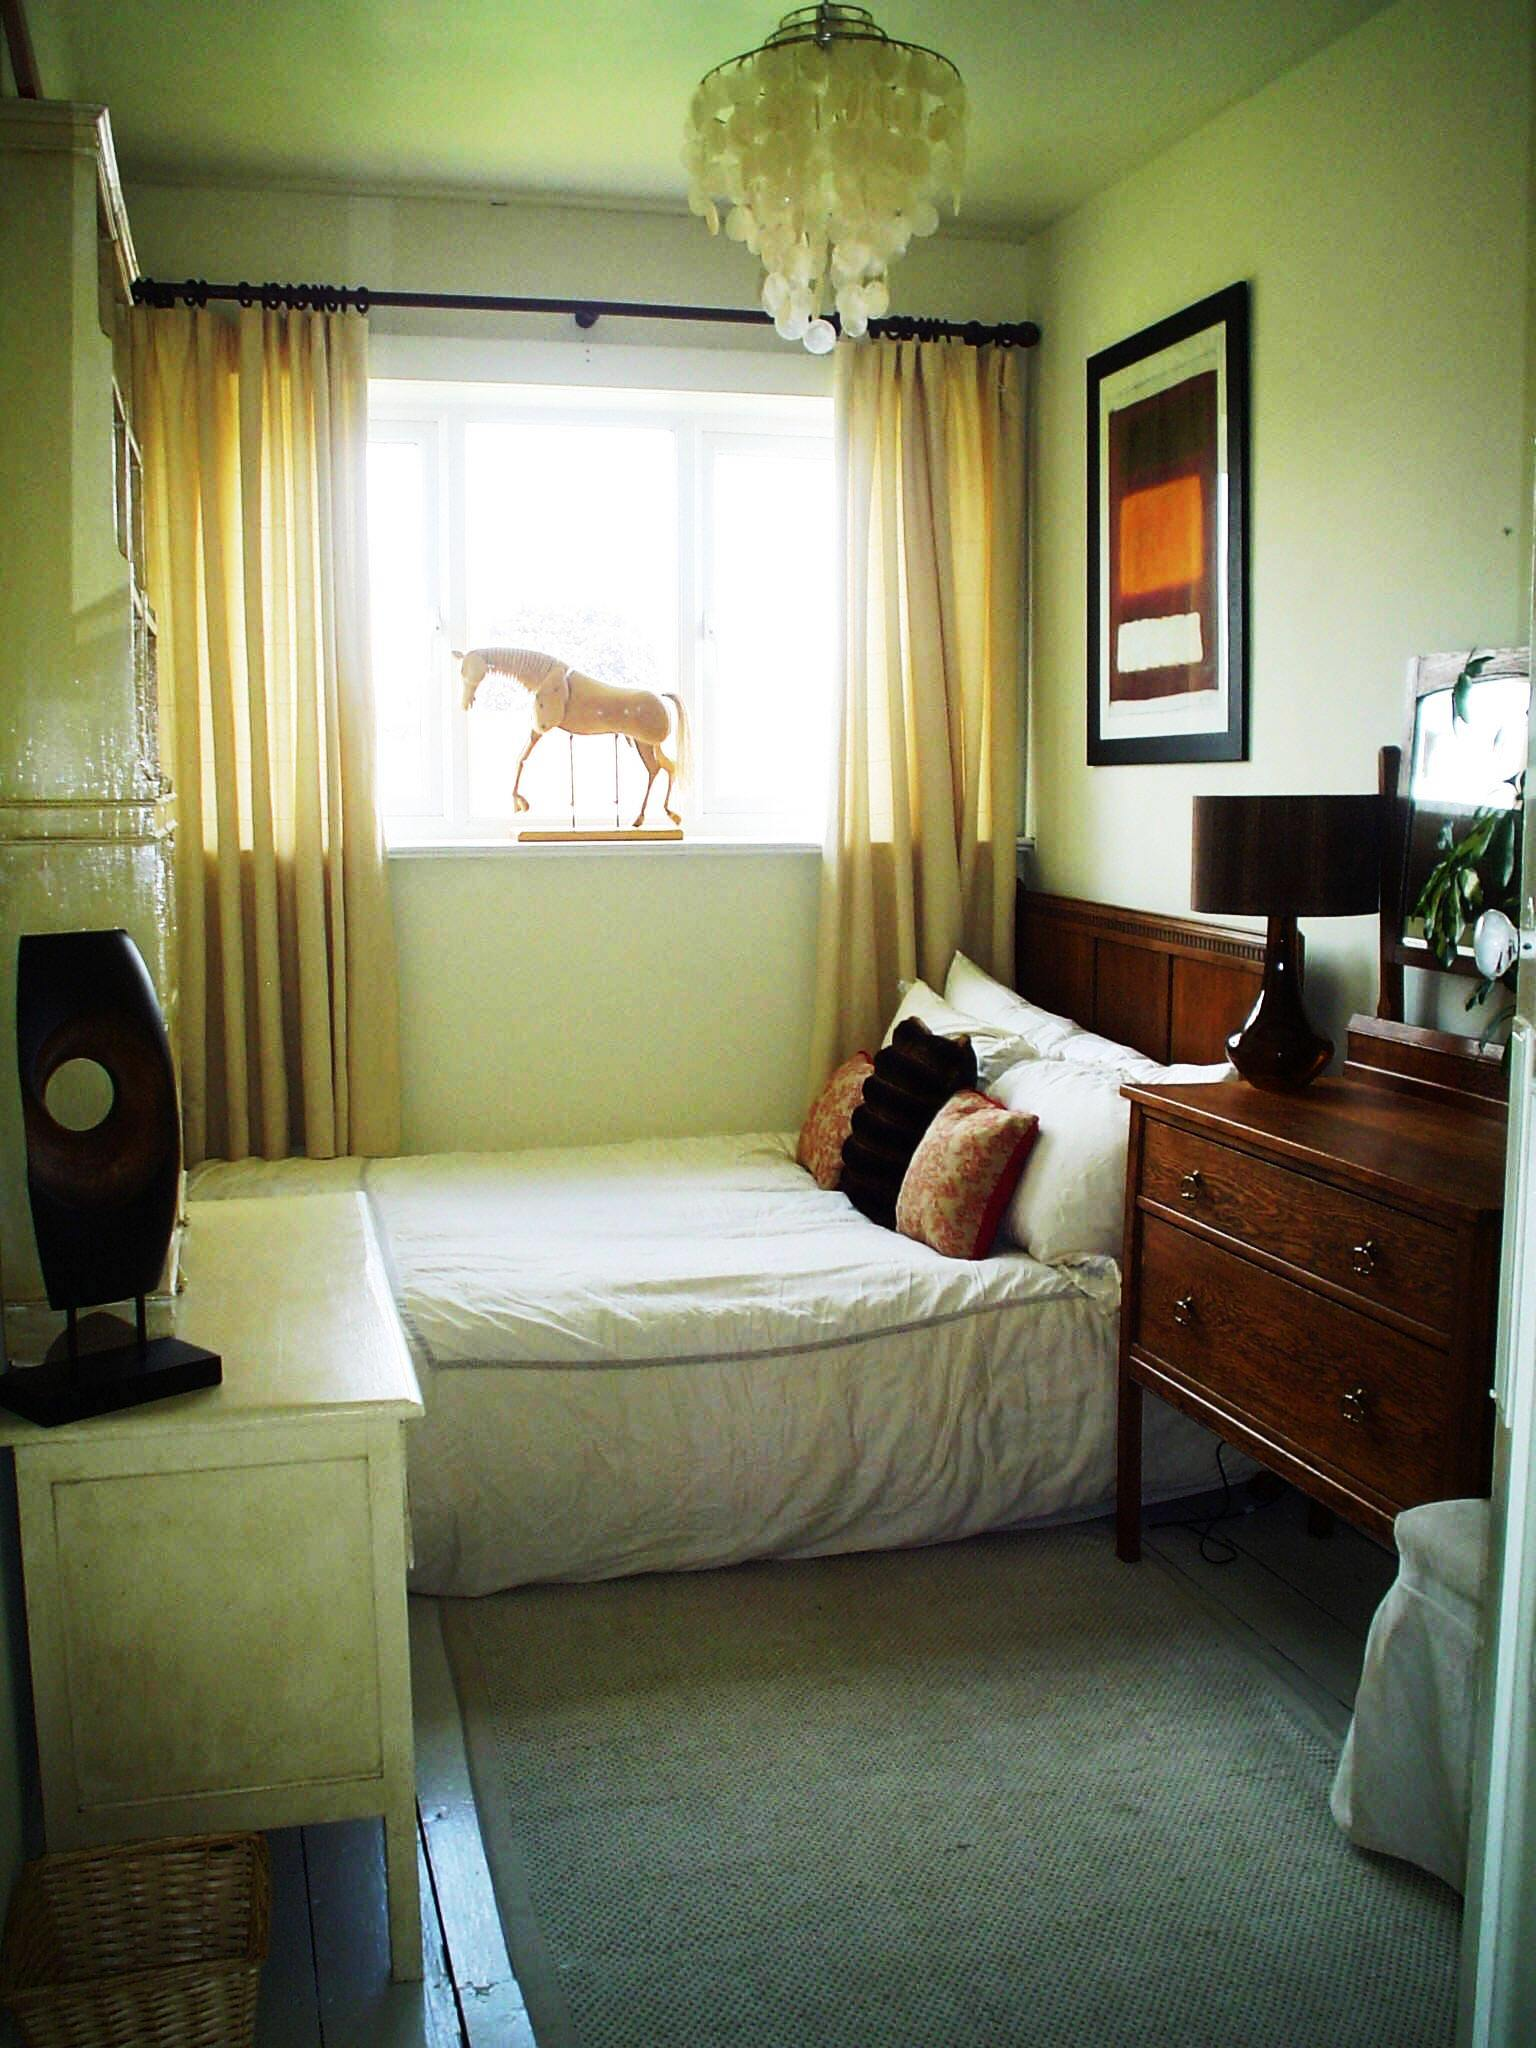 Simple Interior Design Ideas For Small Bedroom on Room Ideas For Small Rooms  id=44595